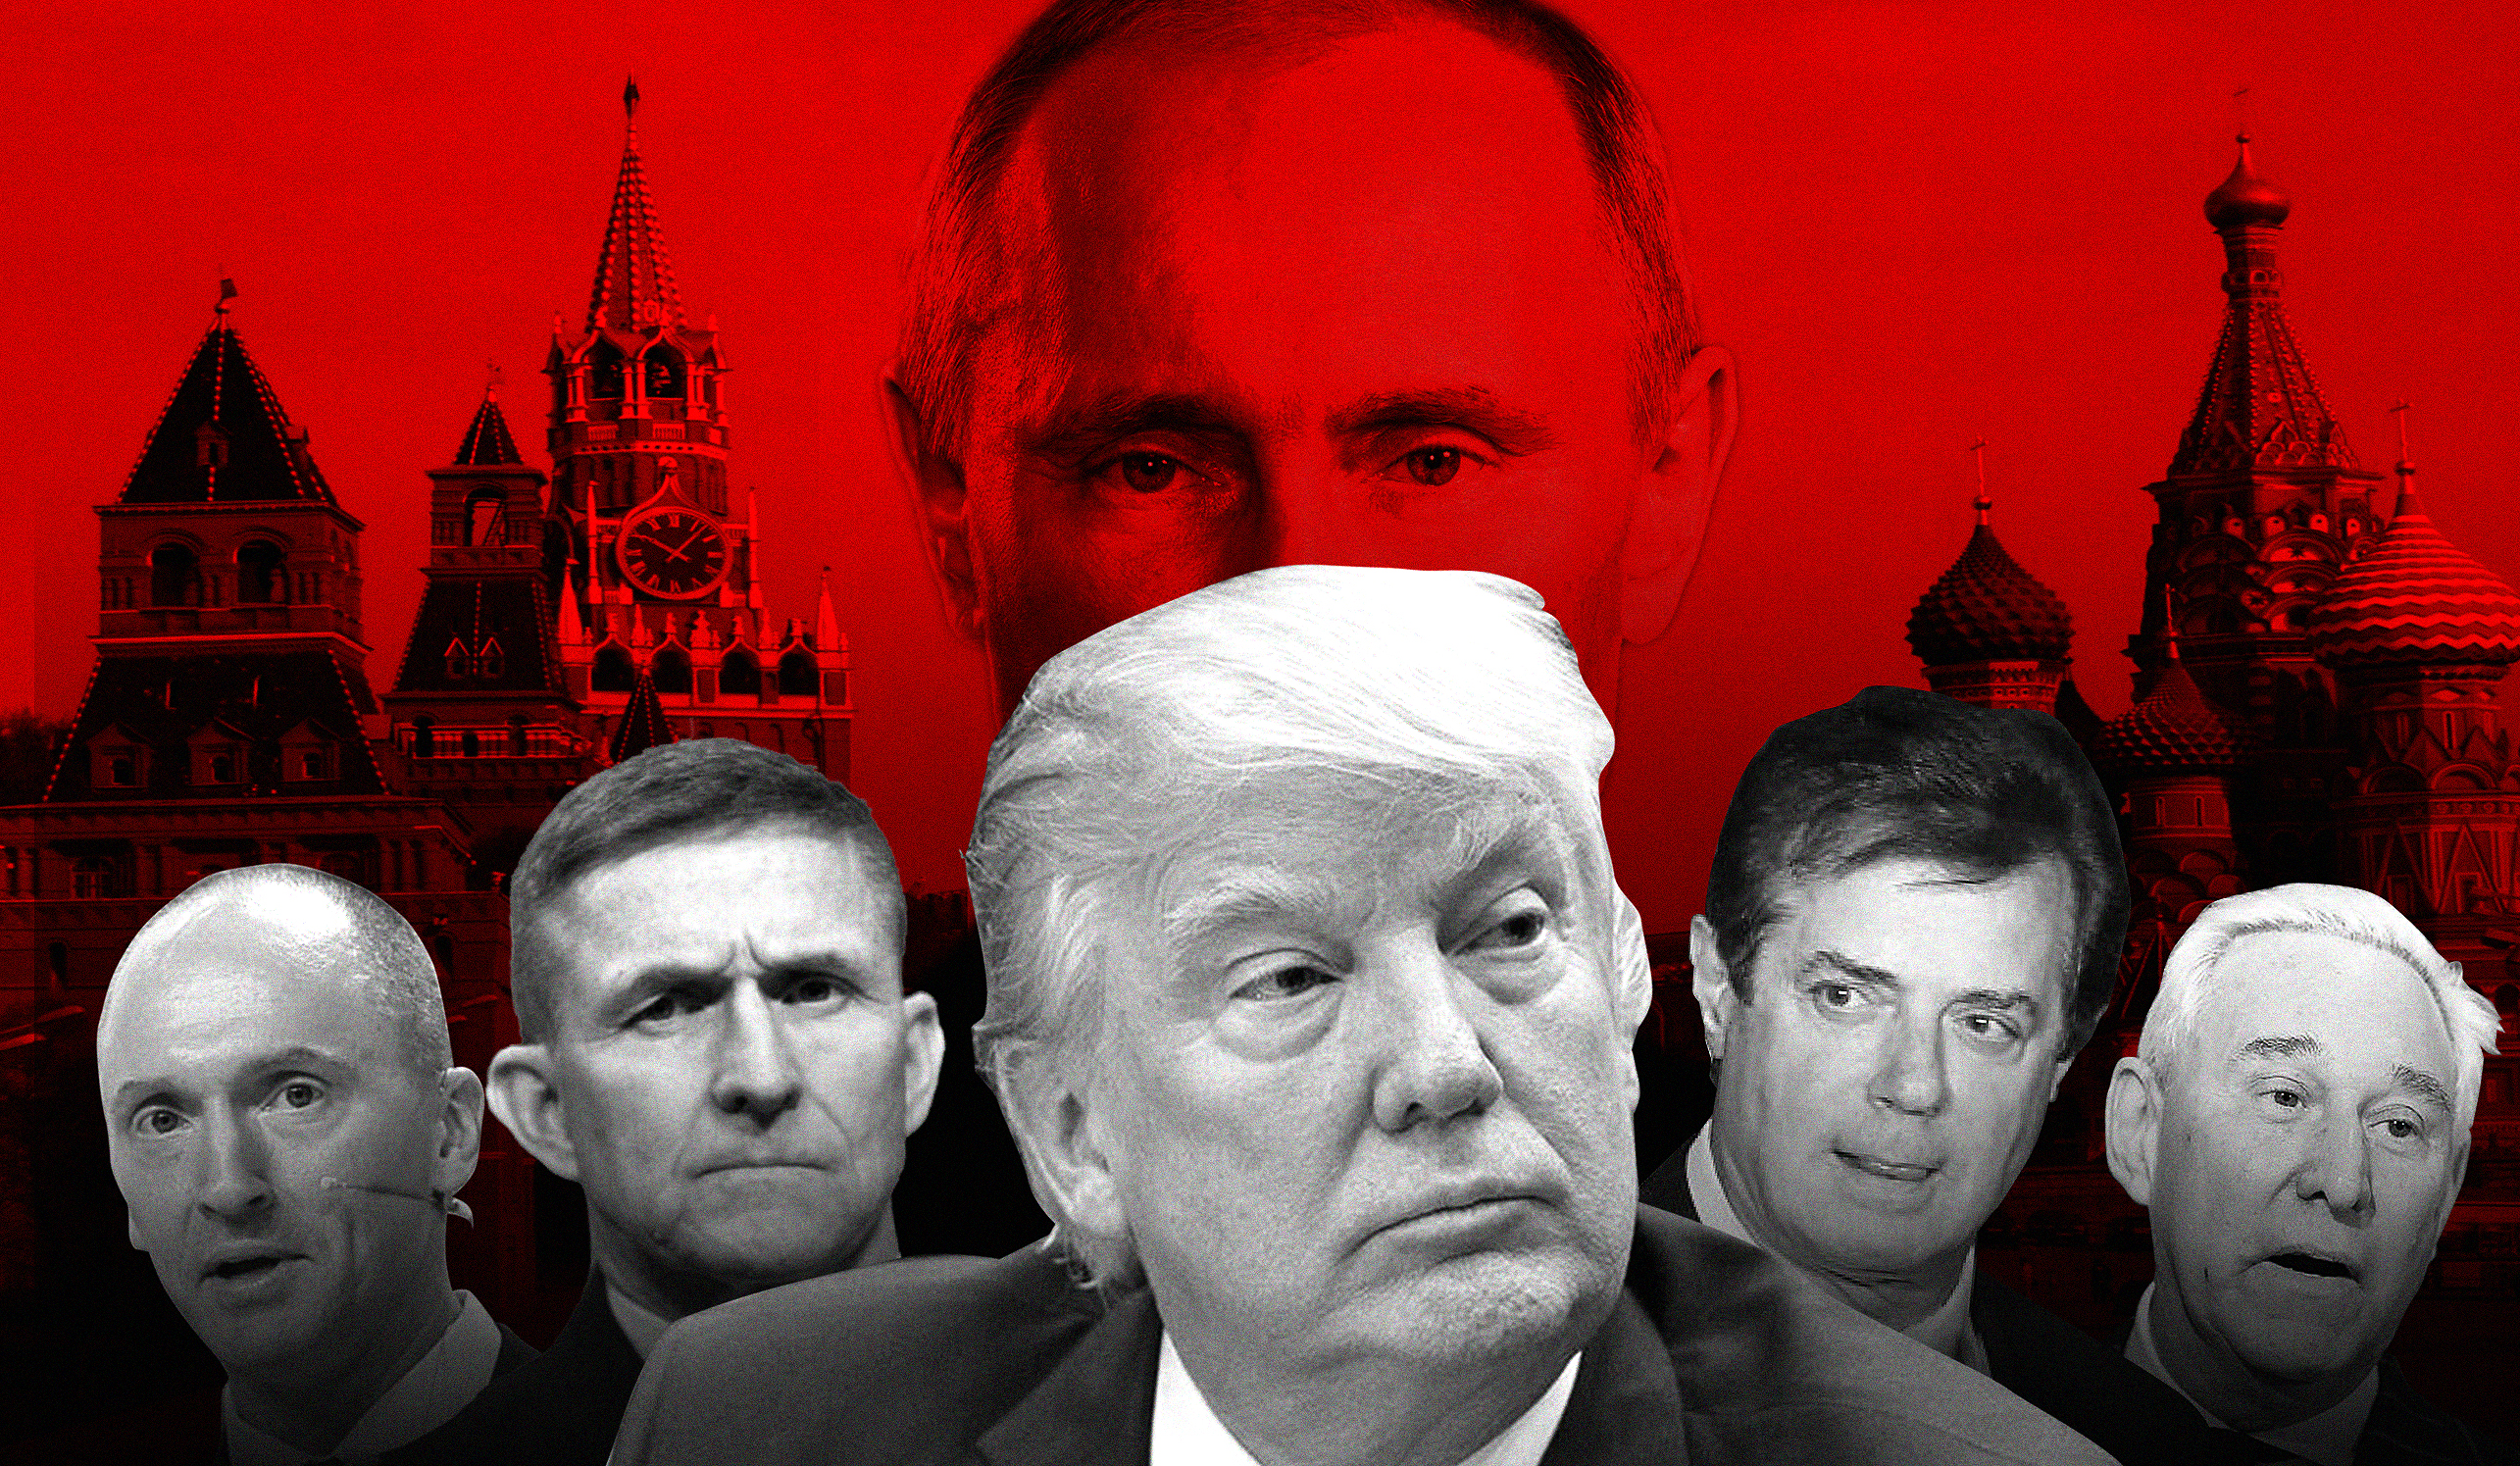 There's actually lots of evidence of Trump-Russia collusion